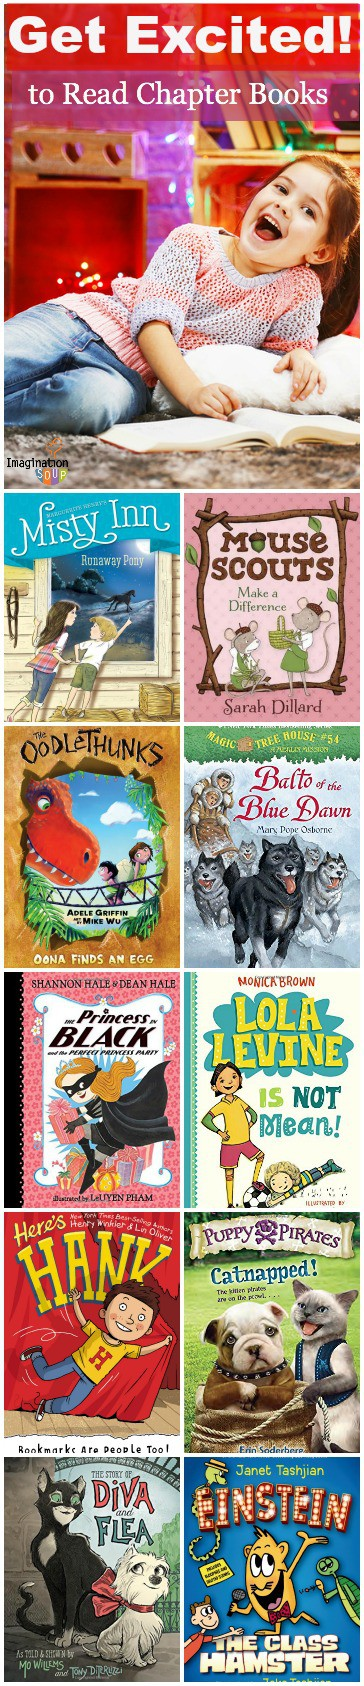 book recommendations for kids transitioning to easy, beginning chapter books